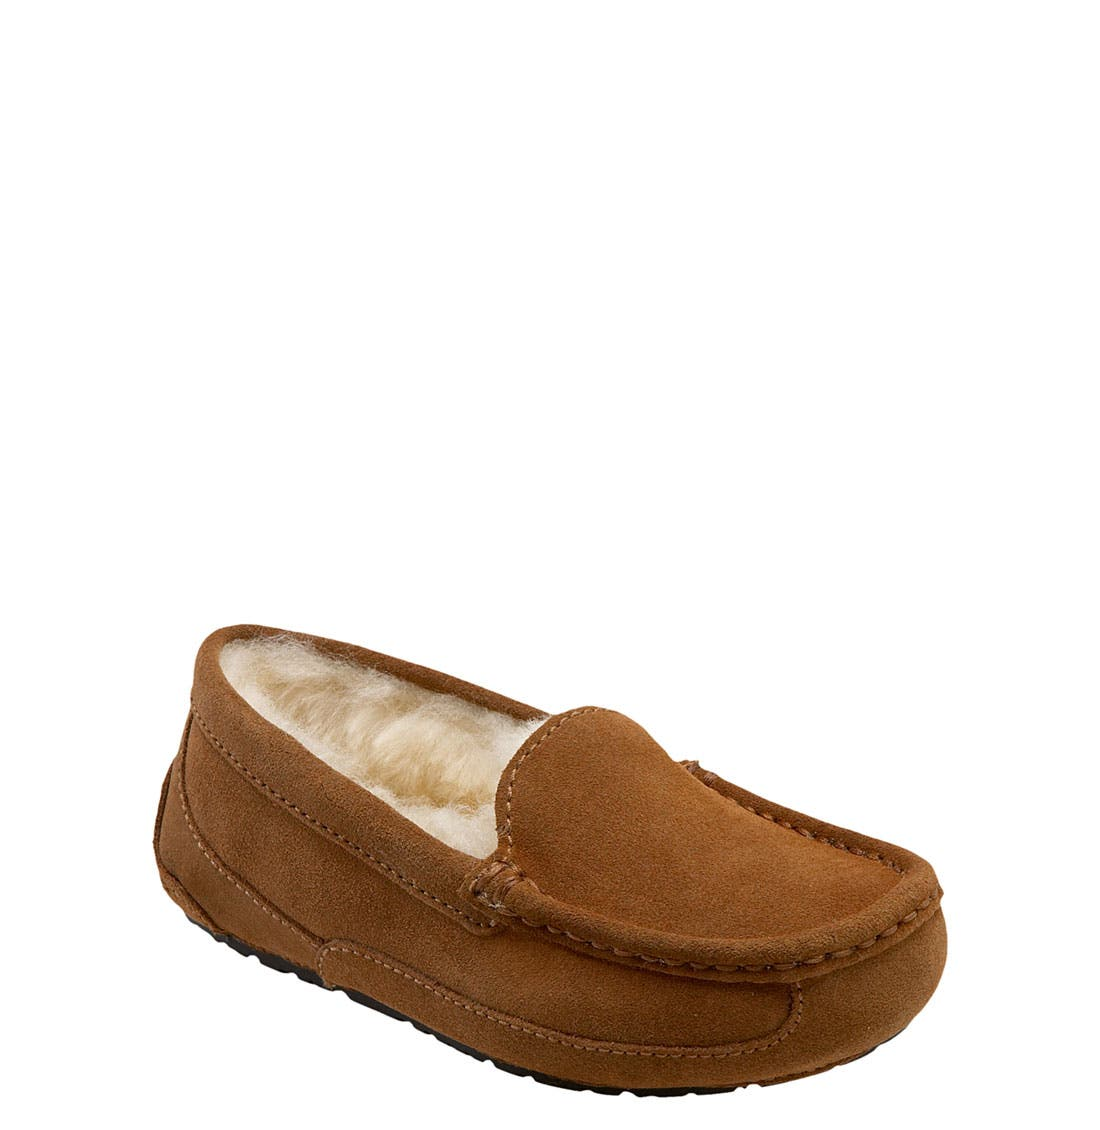 Main Image - UGG® Ascot Slipper (Toddler, Little Kid & Big Kid)